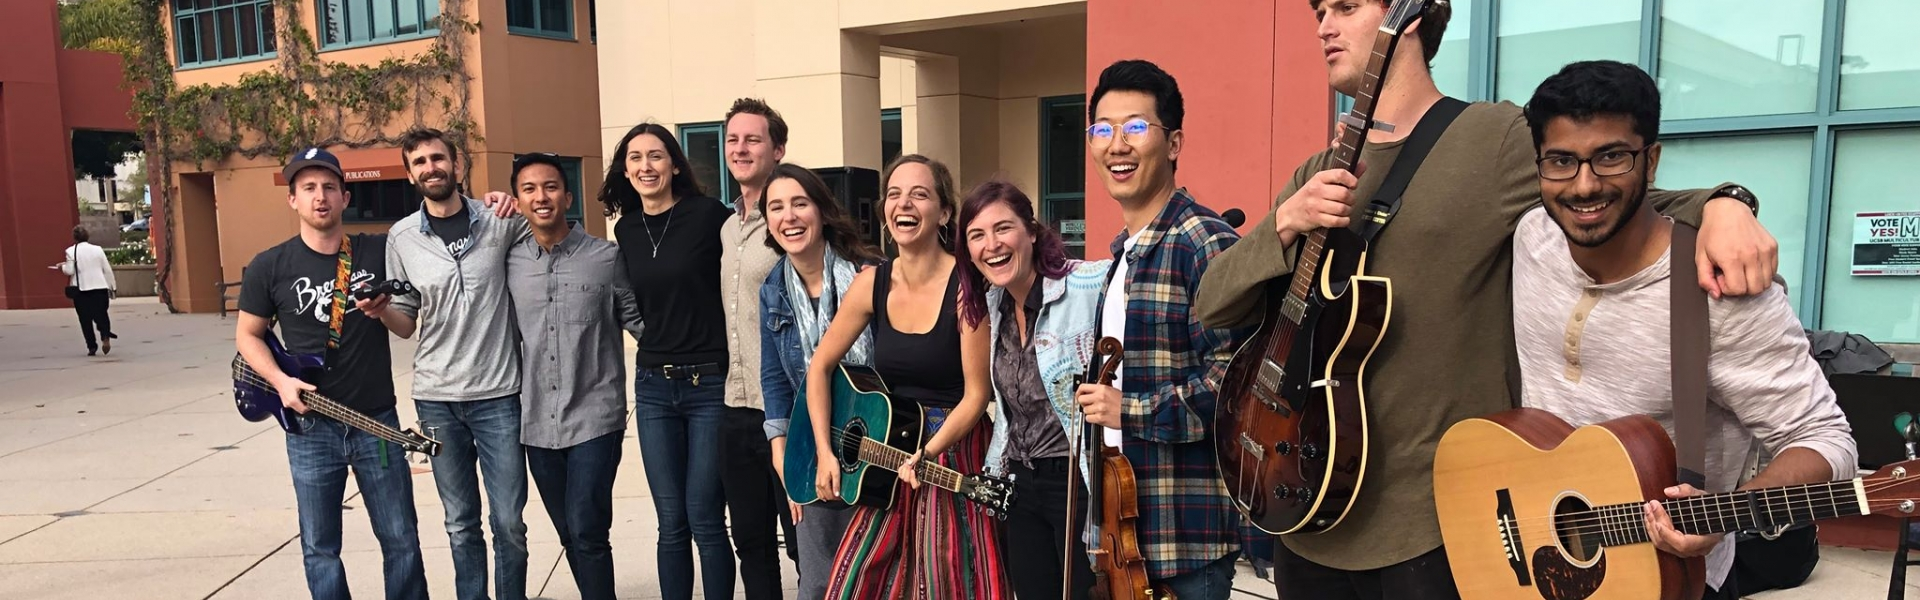 Brengrass: group of students holding various instruments